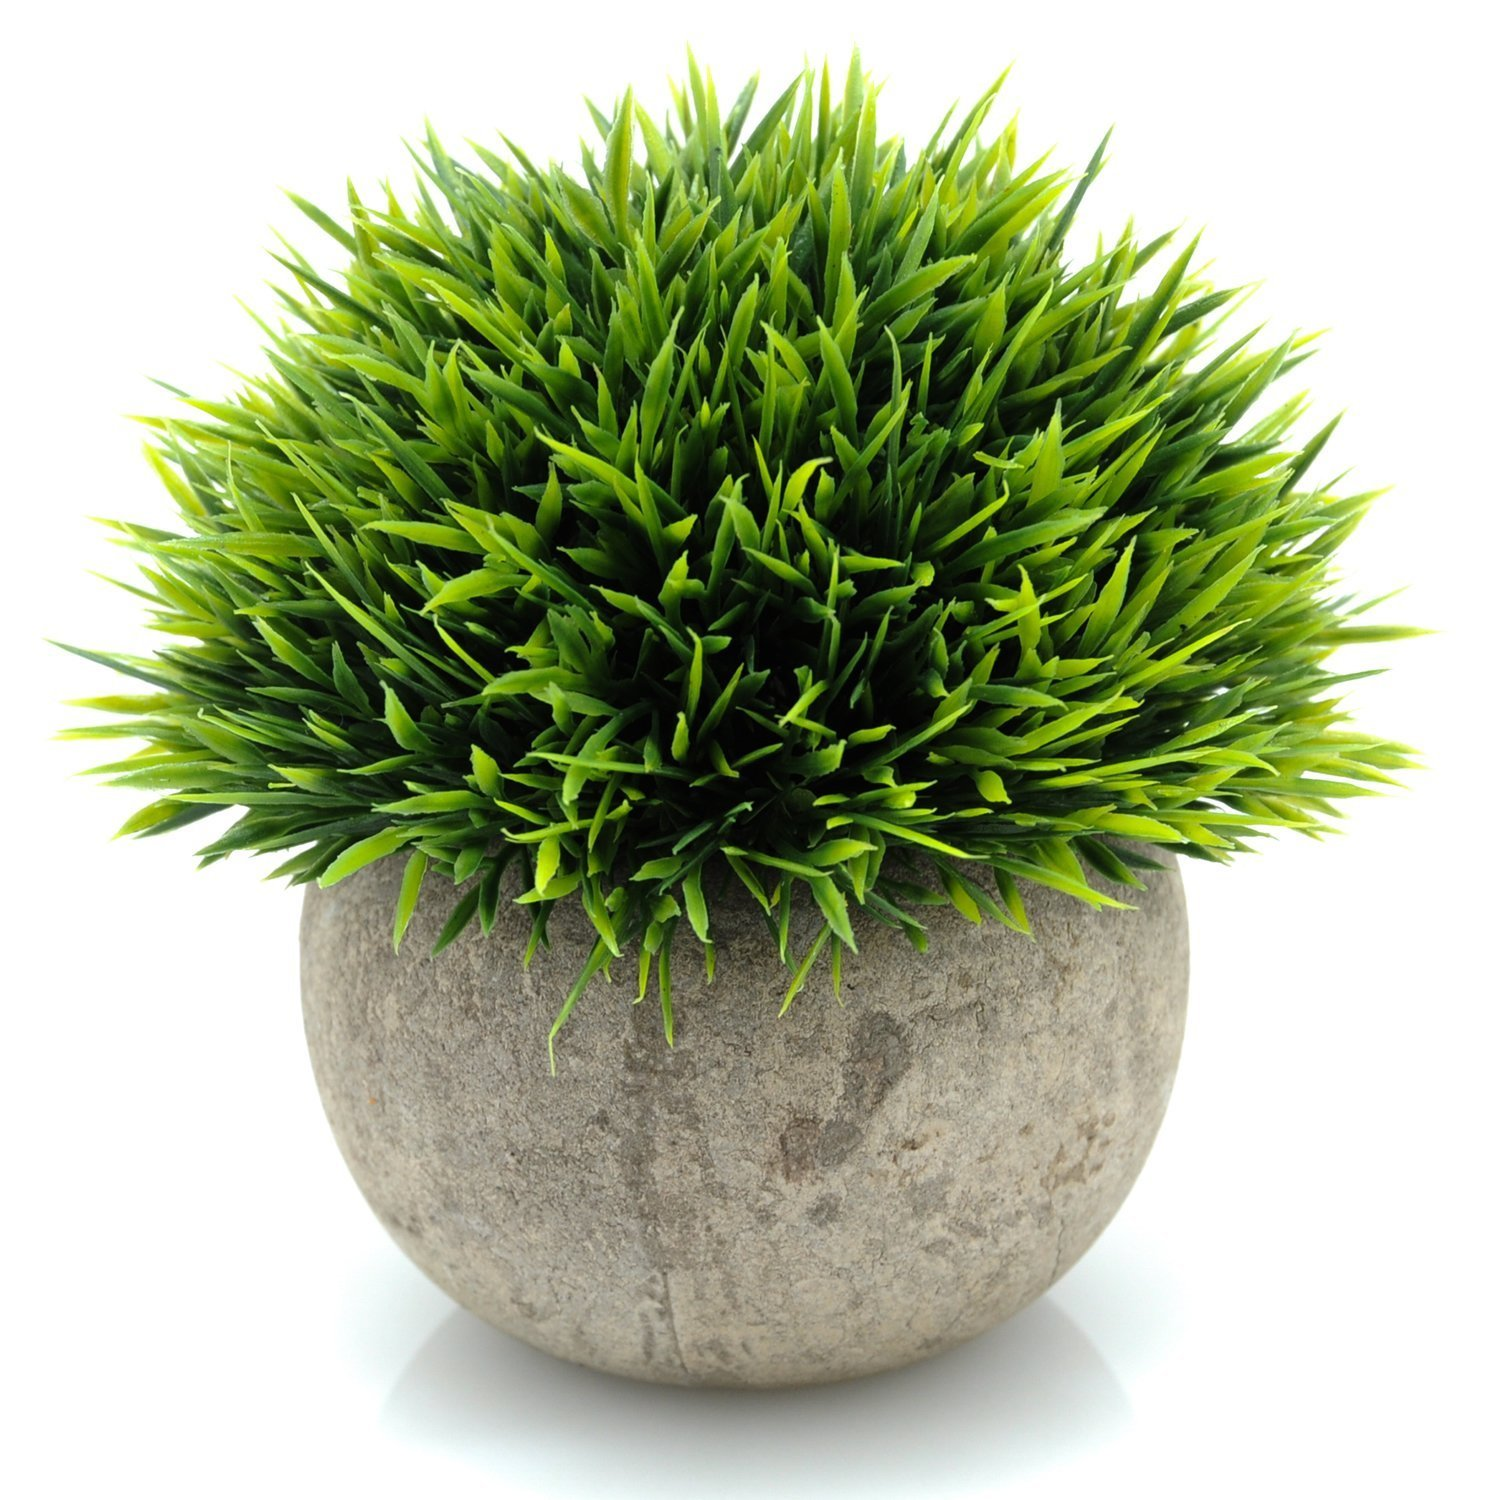 Velener Mini Plastic Fake Green Grass of Plants with Pots for Home Decor